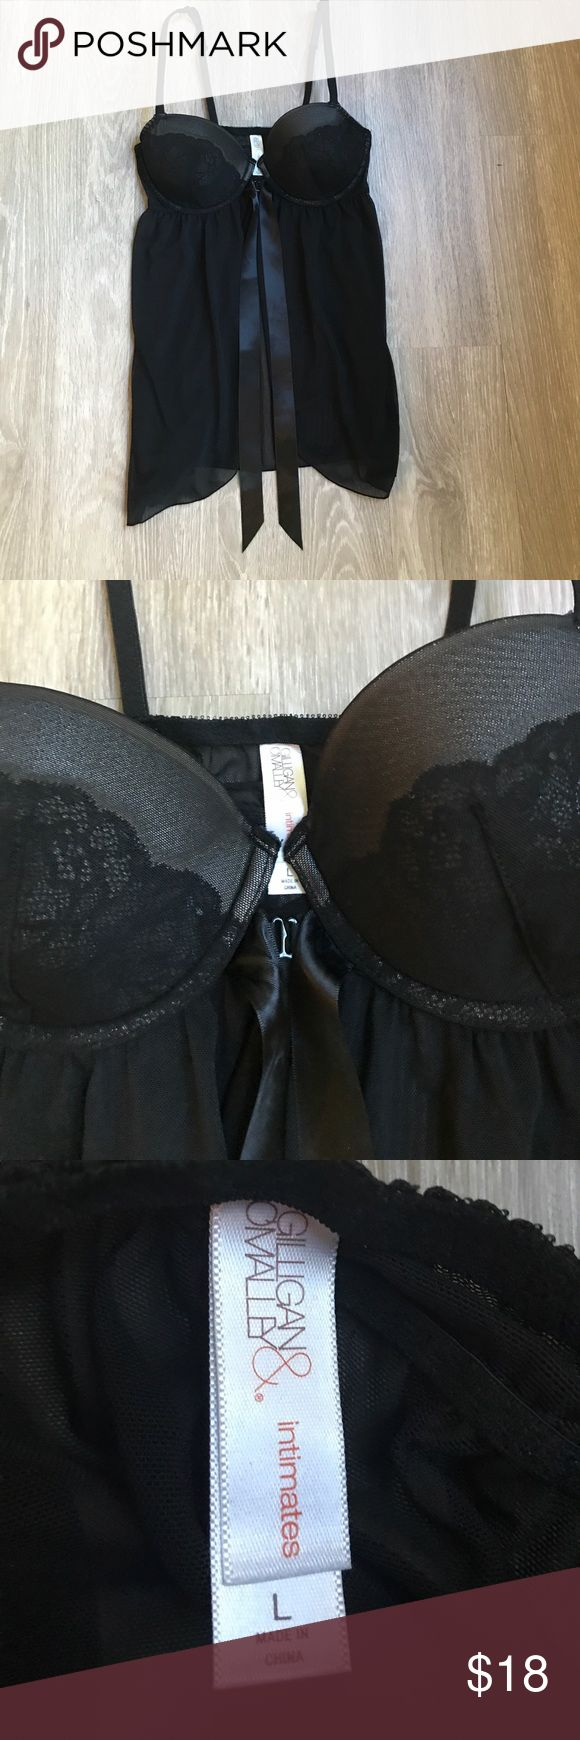 """Gilligan & O'Malley Women's Chemise Black Lingerie Brand: Gilligan & O'Malley Style: Black Lingerie Chemise Top Size: L Condition: Excellent, Like New Material: 92% Nylon, 8% Spandex Length: 20"""" From Top to Bottom of Chemise Other Features: Clasps in the middle of the chest where the Bra cups meet. It has a stretchable bust to fit most chest sizes. It also has adjustable shoulder straps. Gilligan & O'Malley Intimates & Sleepwear Bras"""